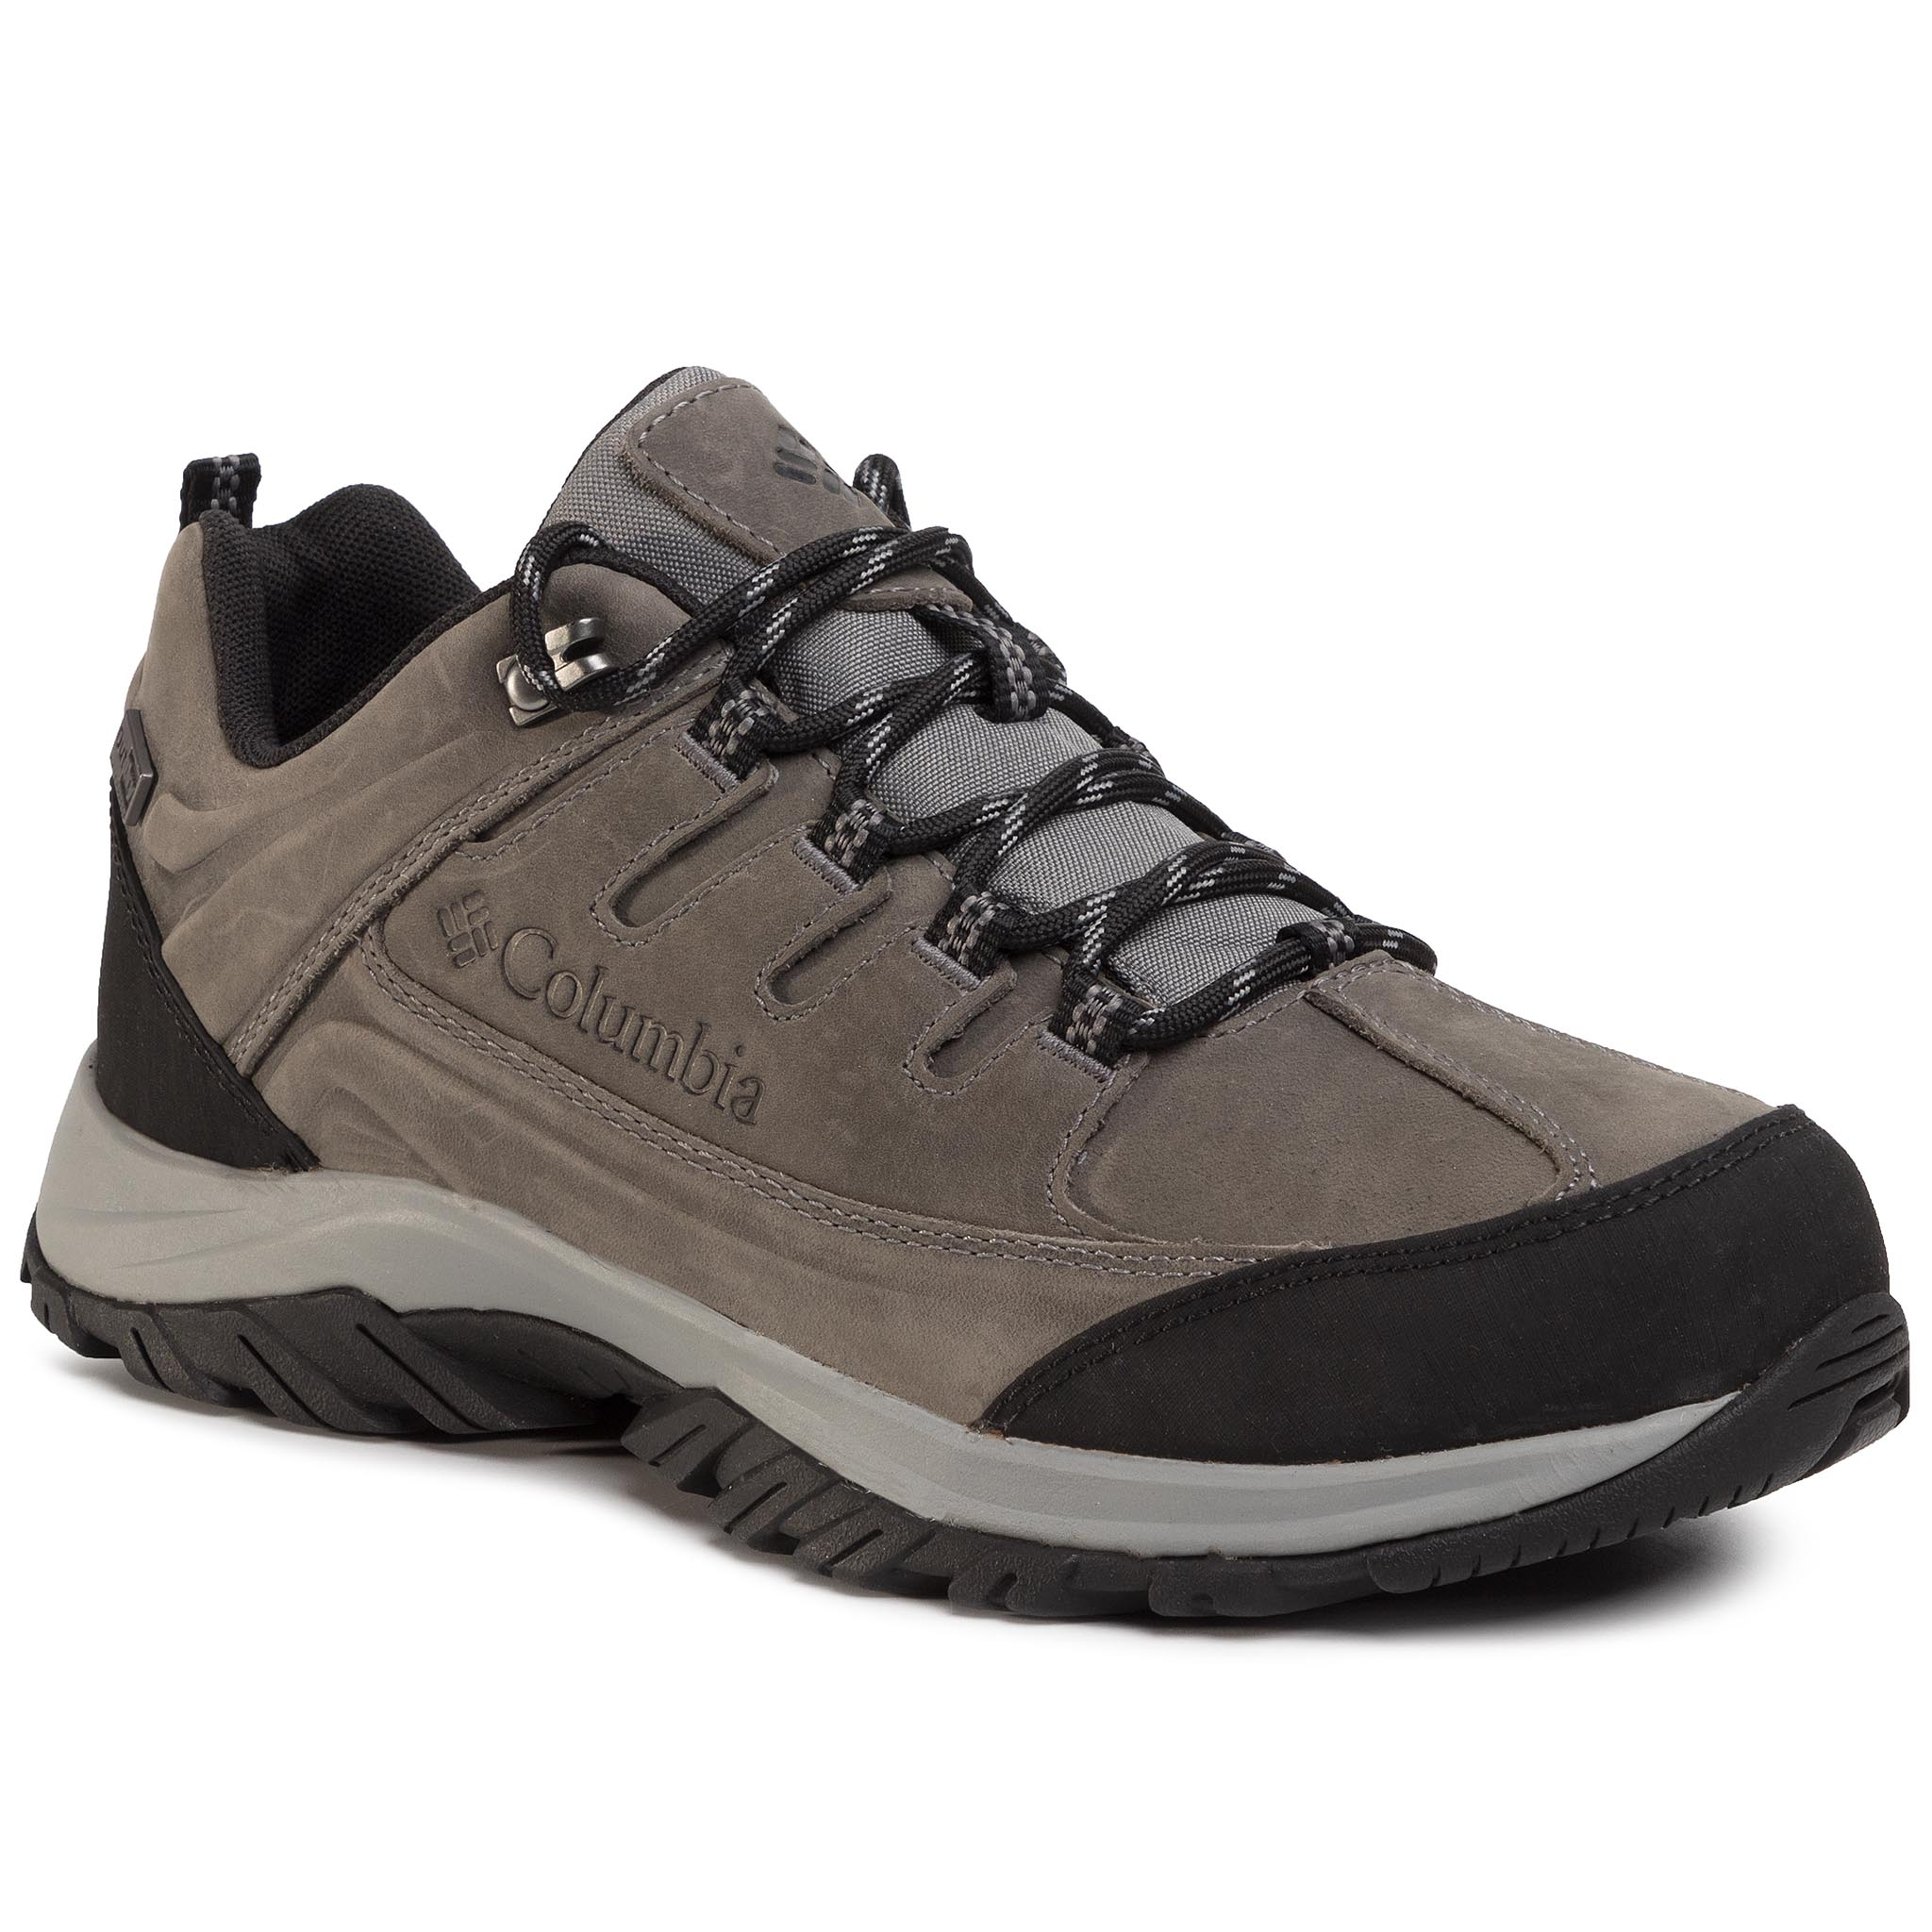 Trekkings Columbia - Terrebonne Ii Outdry Bm5519 Grey Steel 033 imagine epantofi.ro 2021